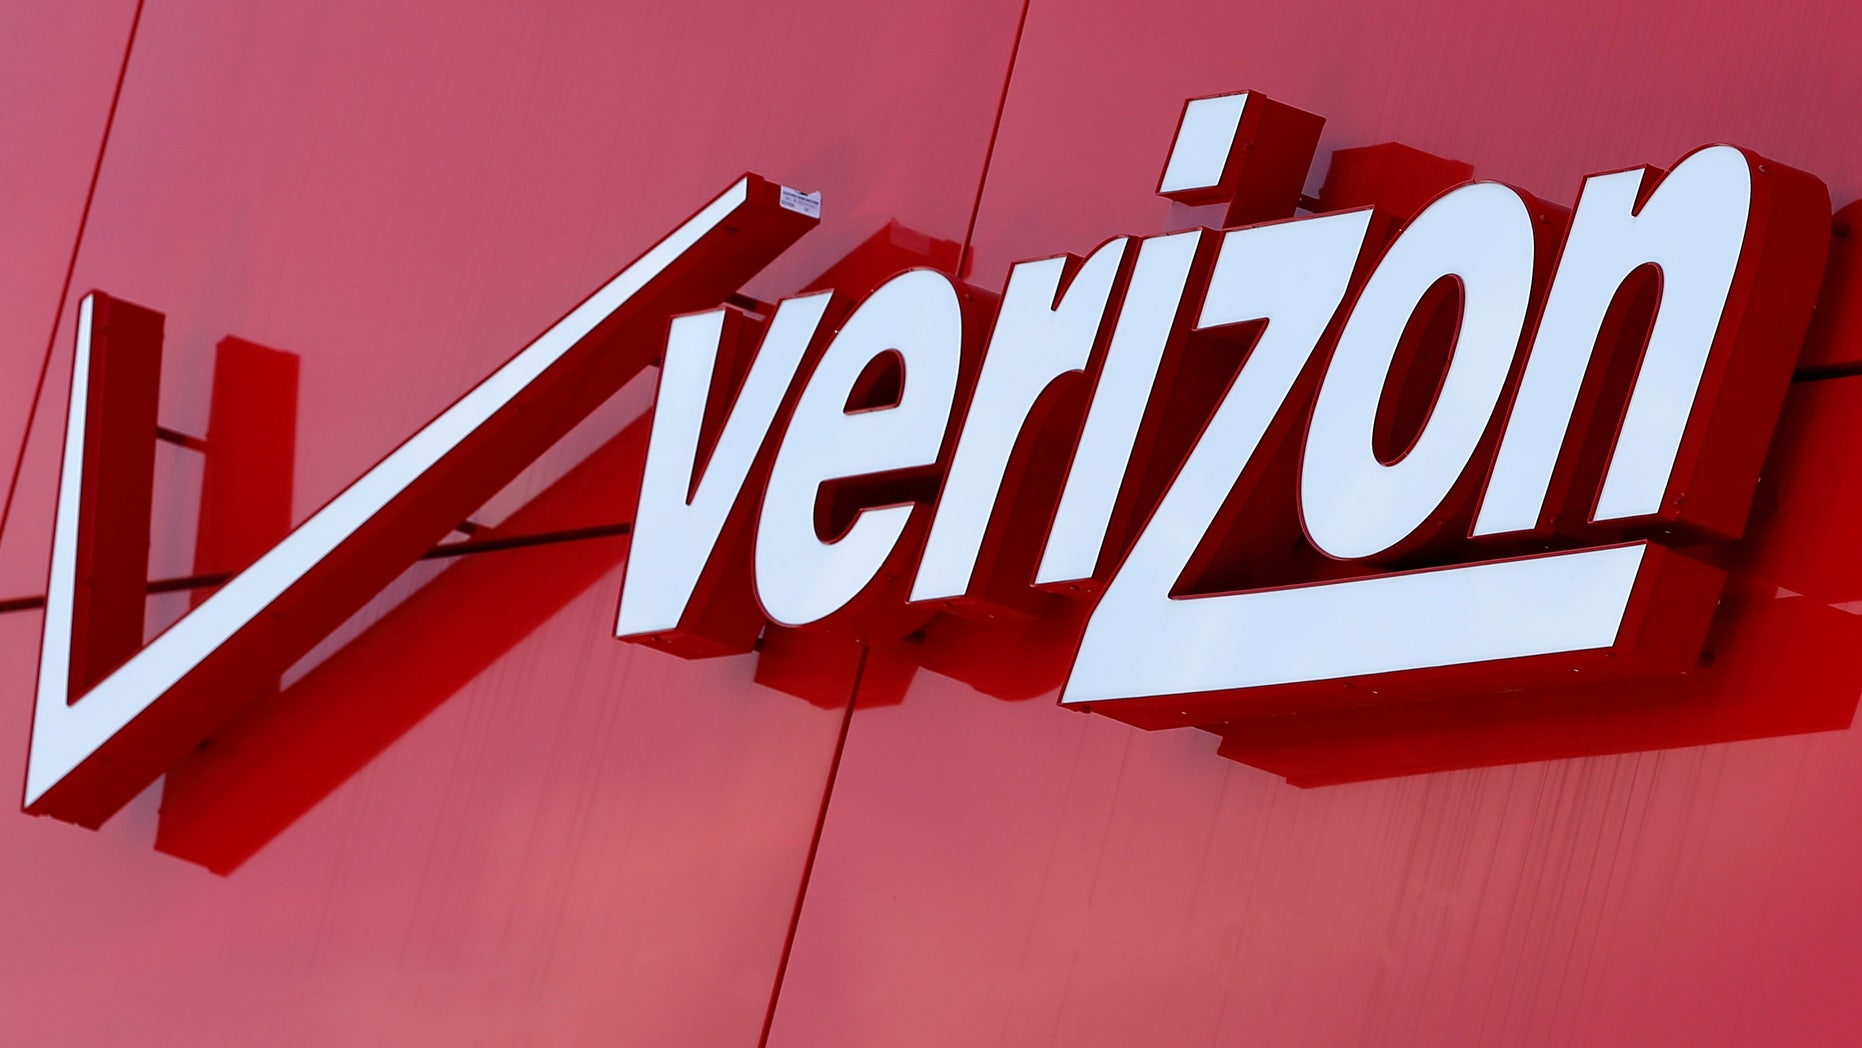 The logo of Verizon is seen at a retail store in San Diego, California April 21, 2016.  REUTERS/Mike Blake/File Photo - RTSJQRX